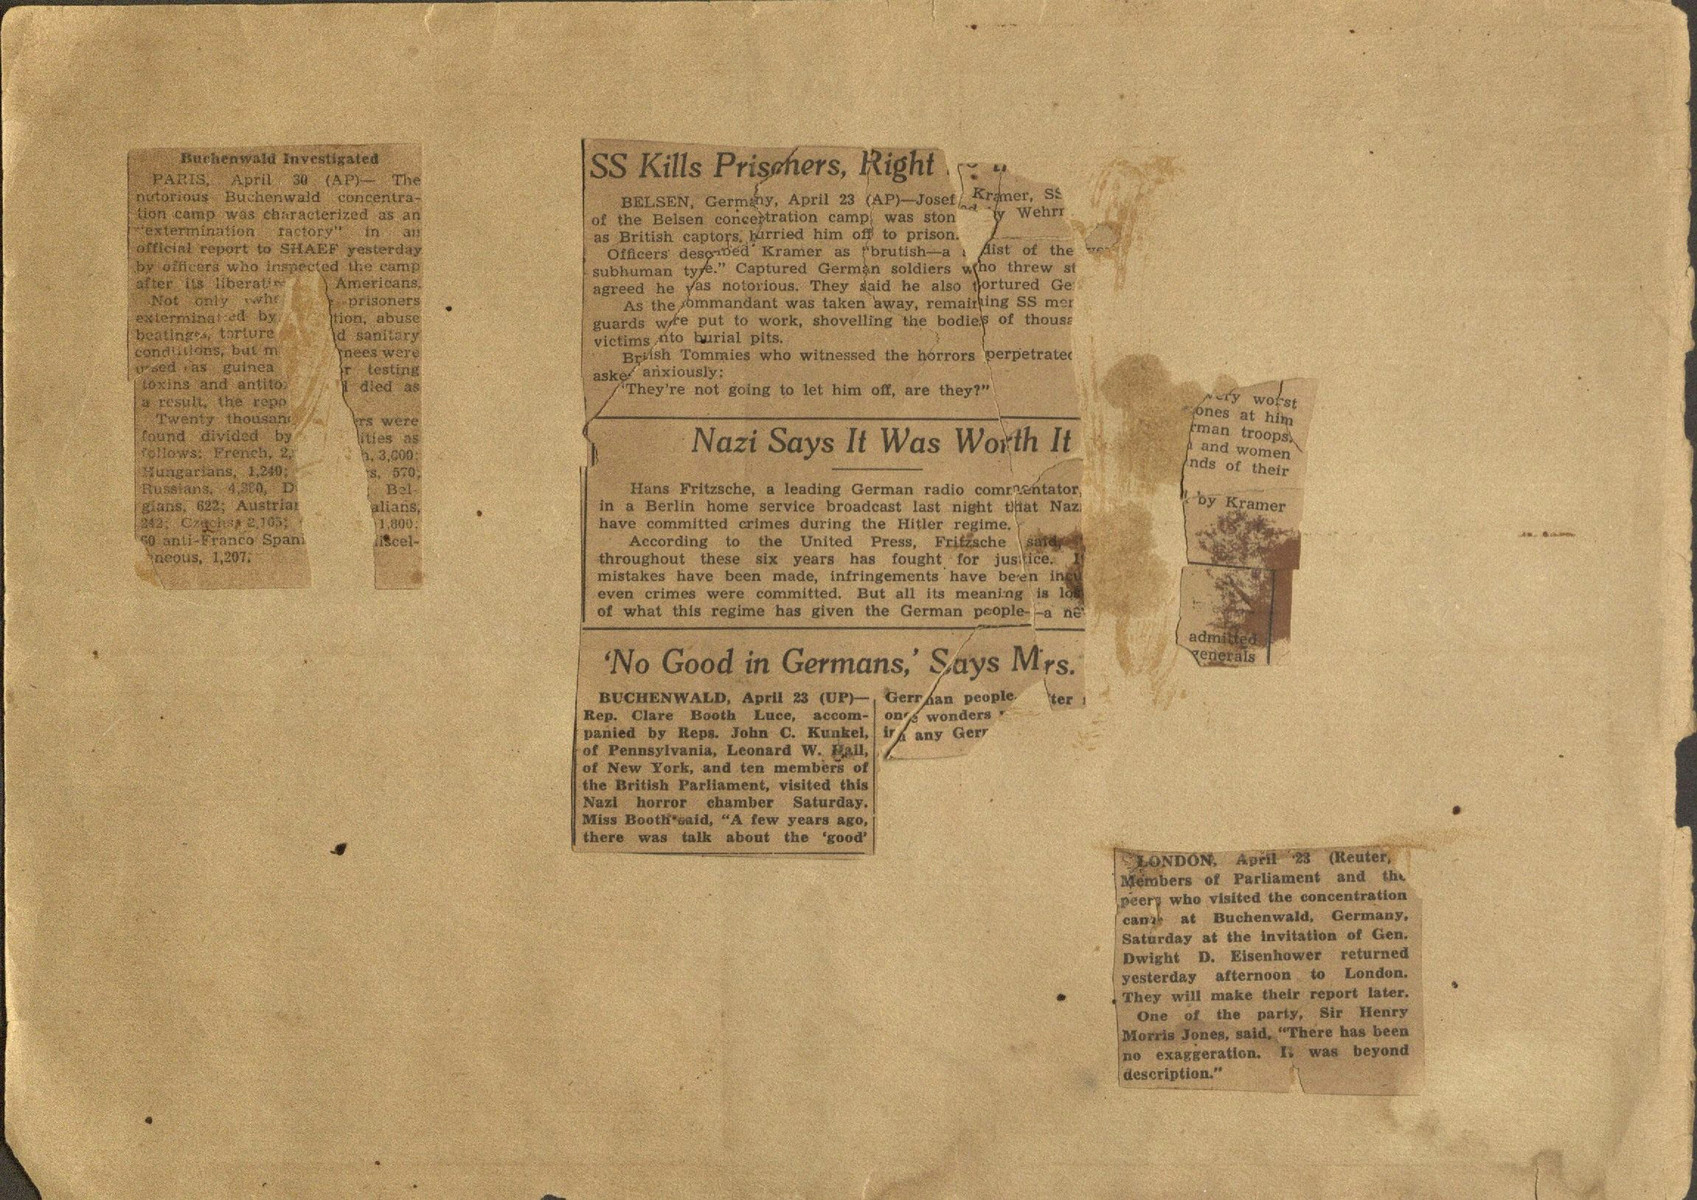 """Newspaper clippings pasted into a photograph album titled """"Buchenwald/or a Glance at German """"Kultur"""""""" by Murray Bucher."""